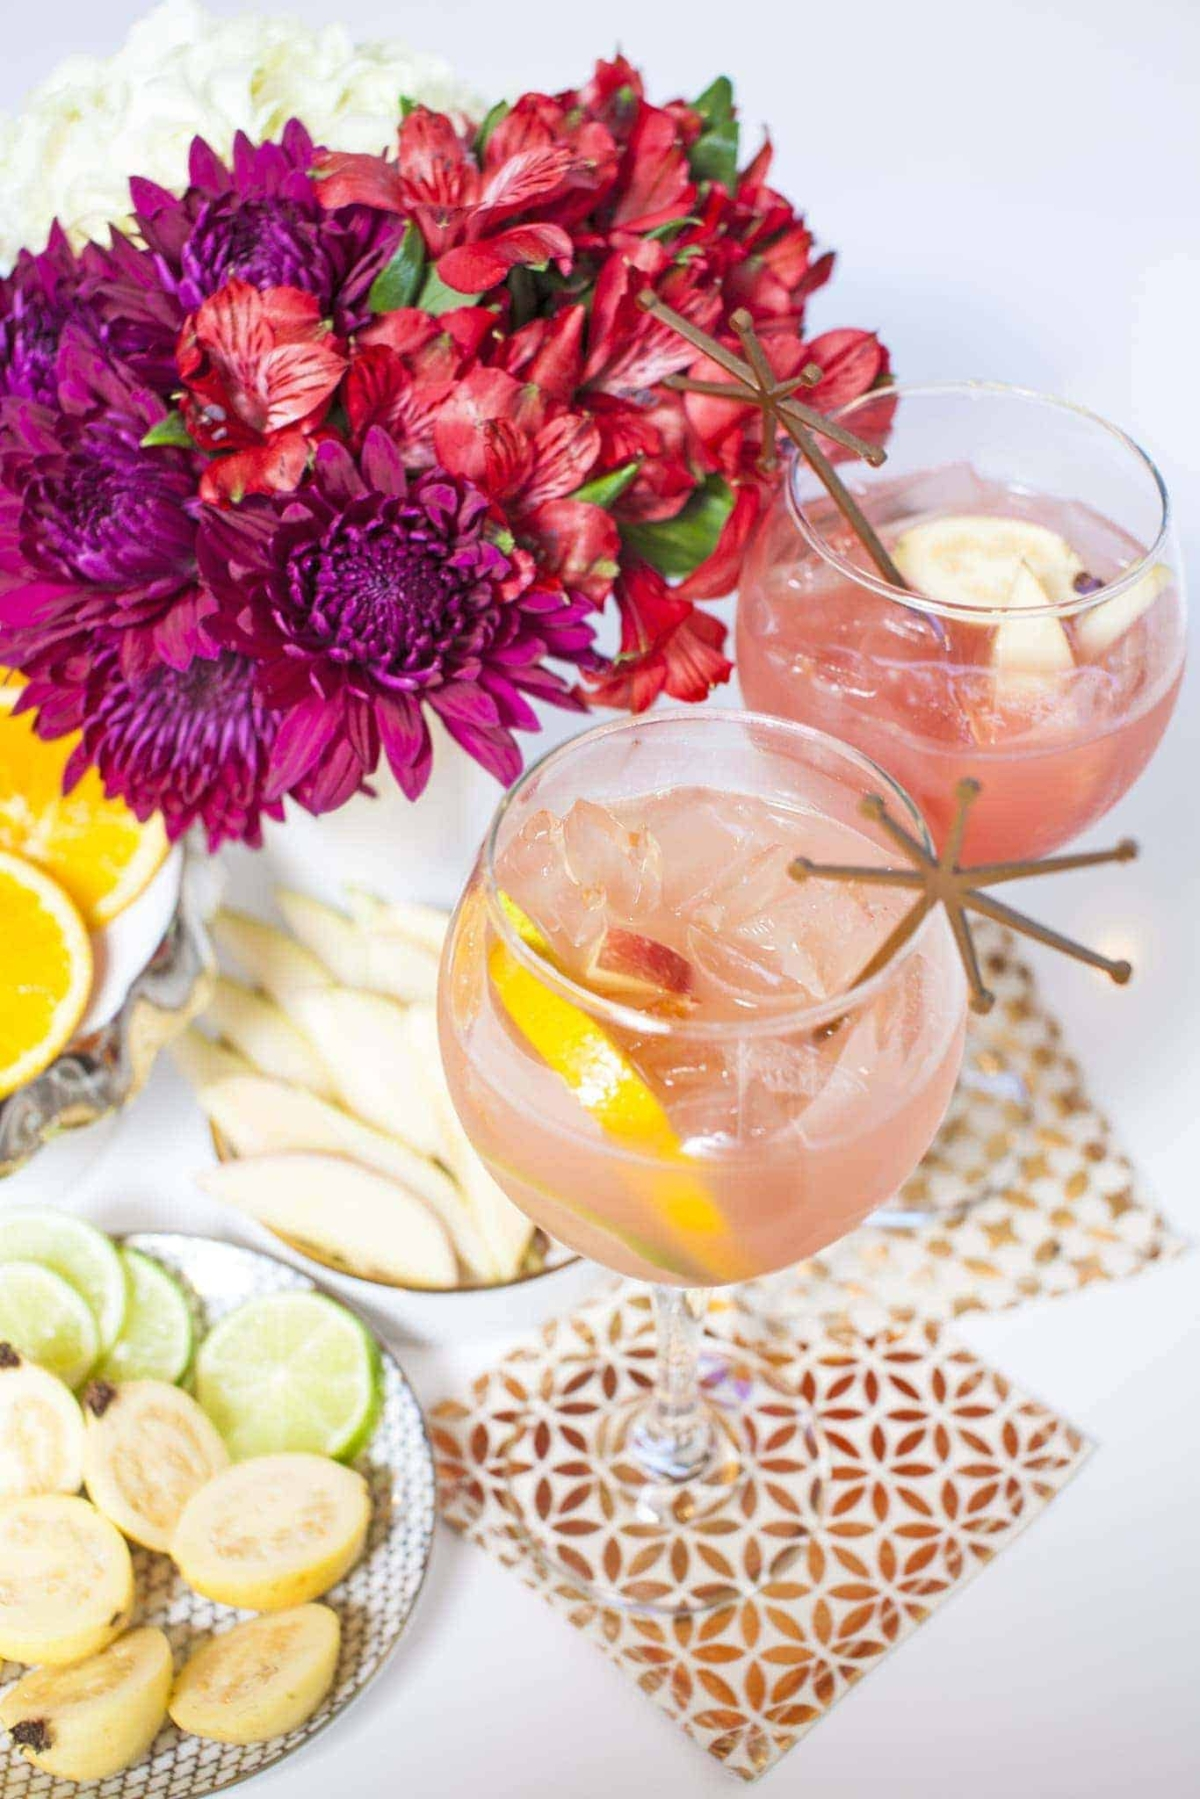 This sangria mocktail is sooo refreshing on a hot summer day